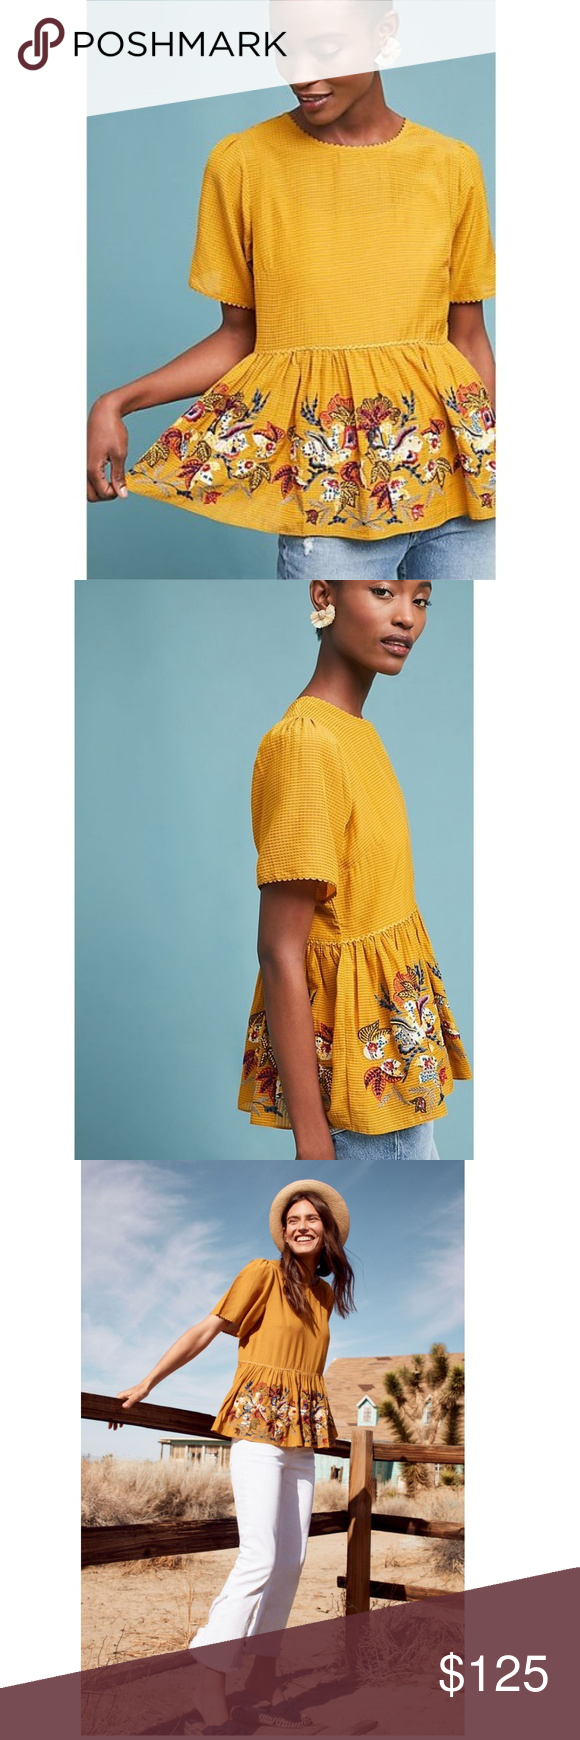 9e5598d25b229 Anthropologie DARIELA PEPLUM TOP new Delicate beadwork interwoven with  bright embroidery enlivens this flattering skirted top